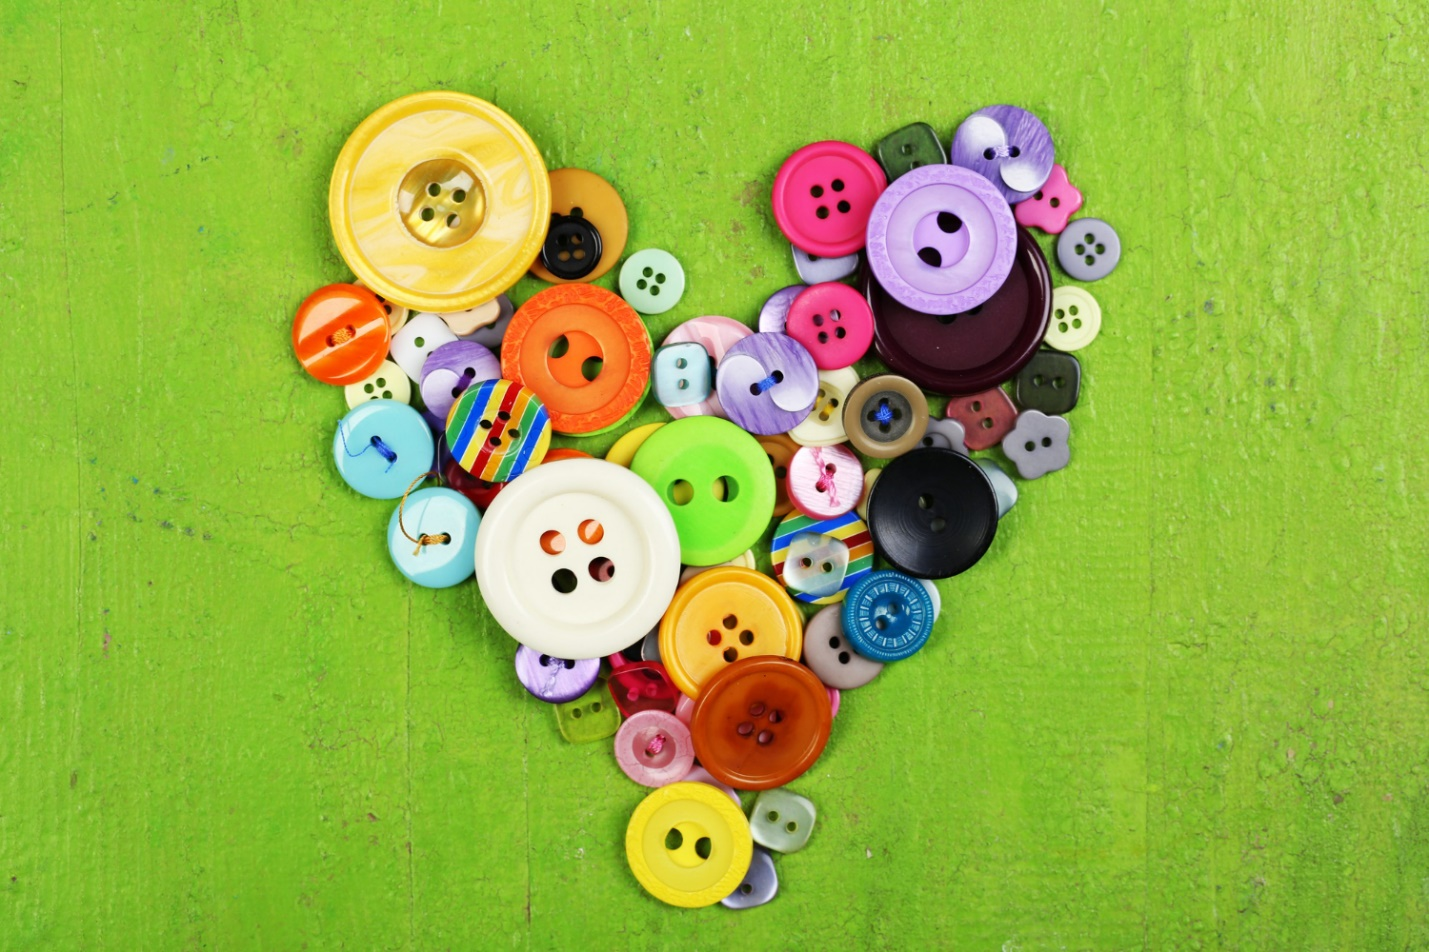 C:\Users\Dell\Downloads\sewing-buttons-heart-wooden-background.jpg